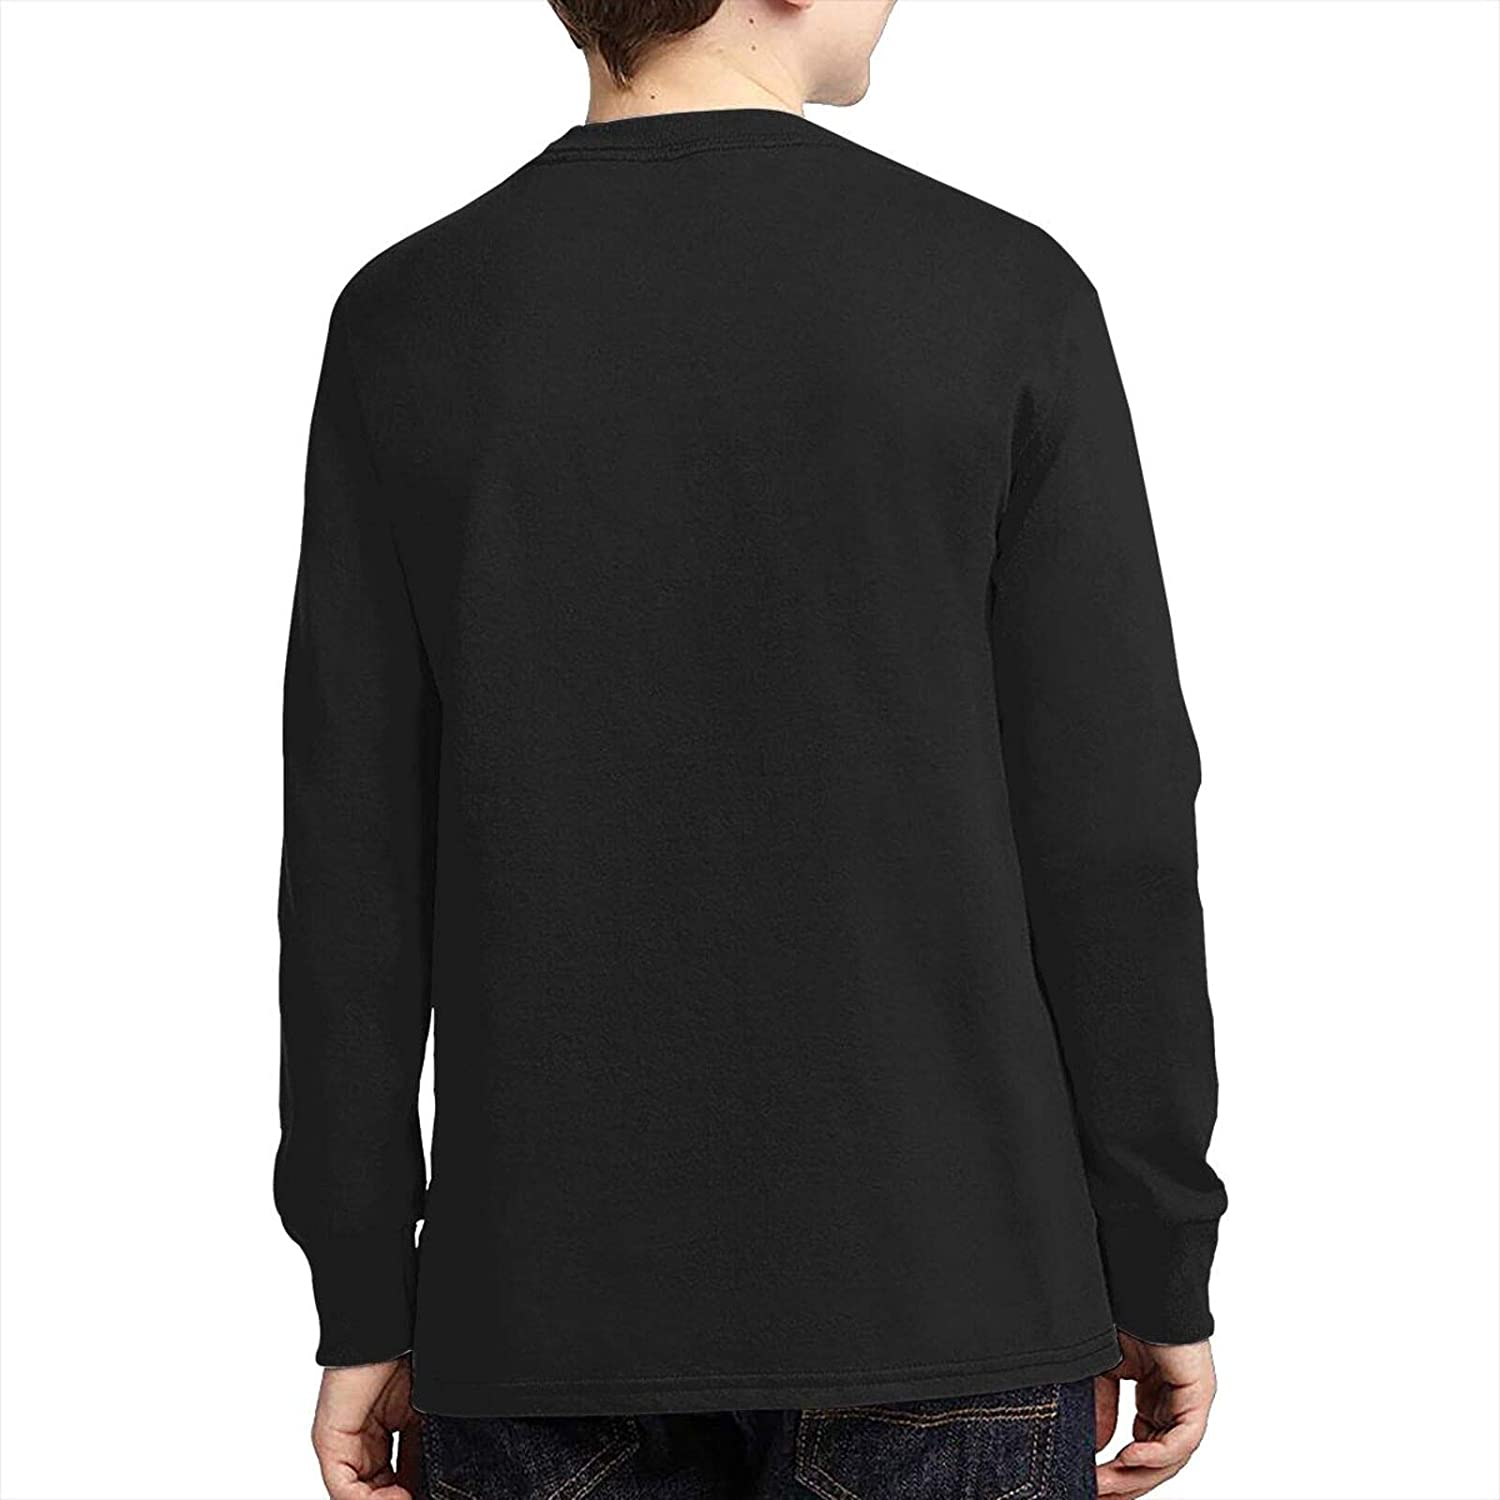 Teens Boys' Cotton 3D Printed Comfty Round Neck Long Sleeve T-Shirts Anime Graphic Tees Shirt Top